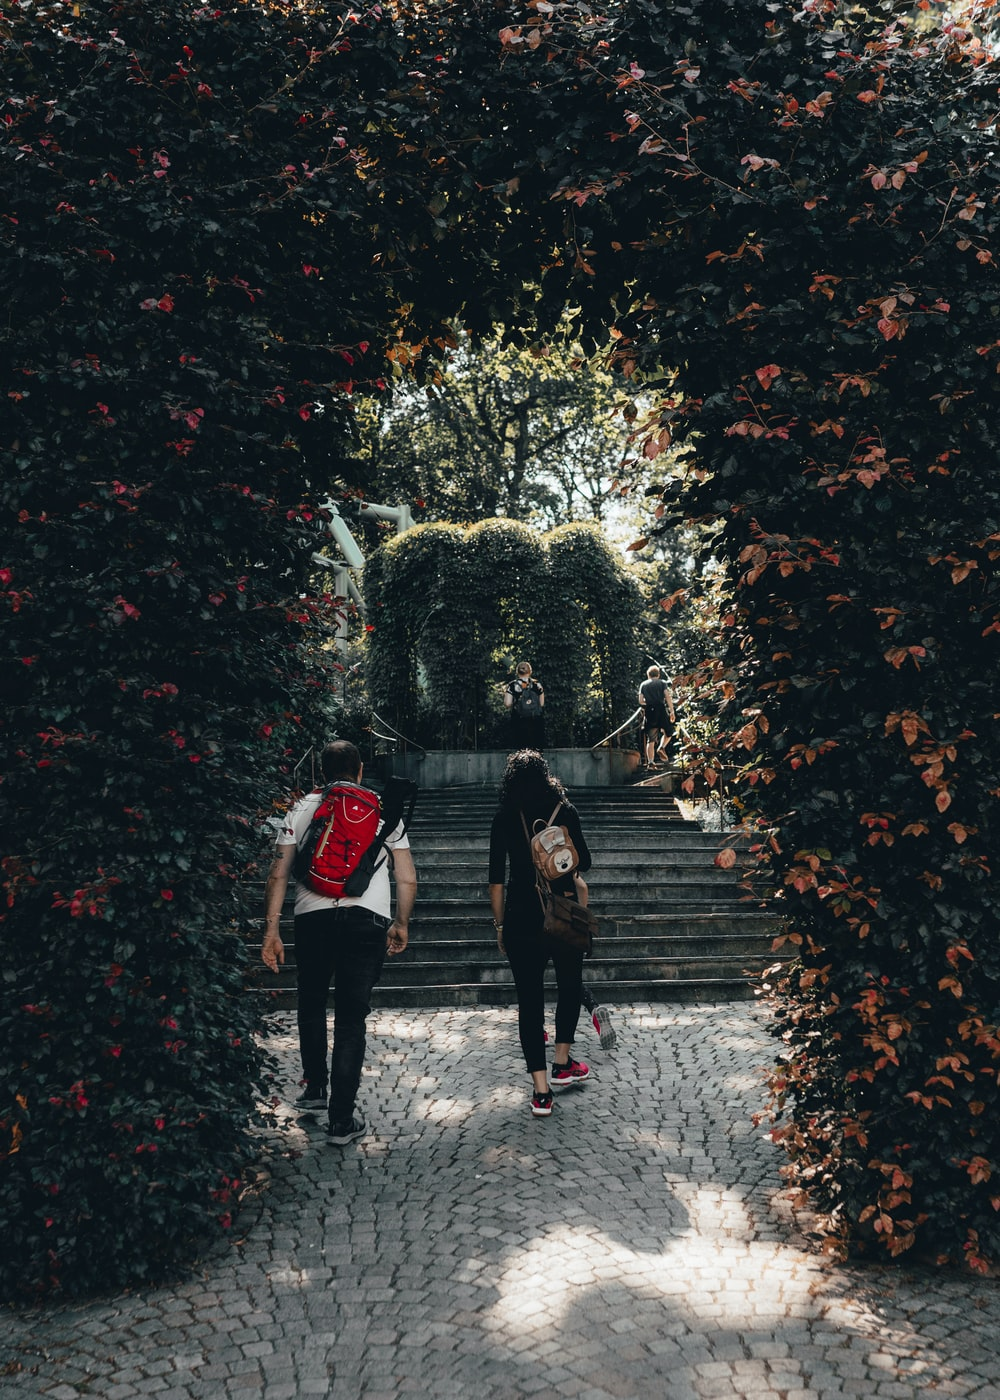 woman and man walking on pathway